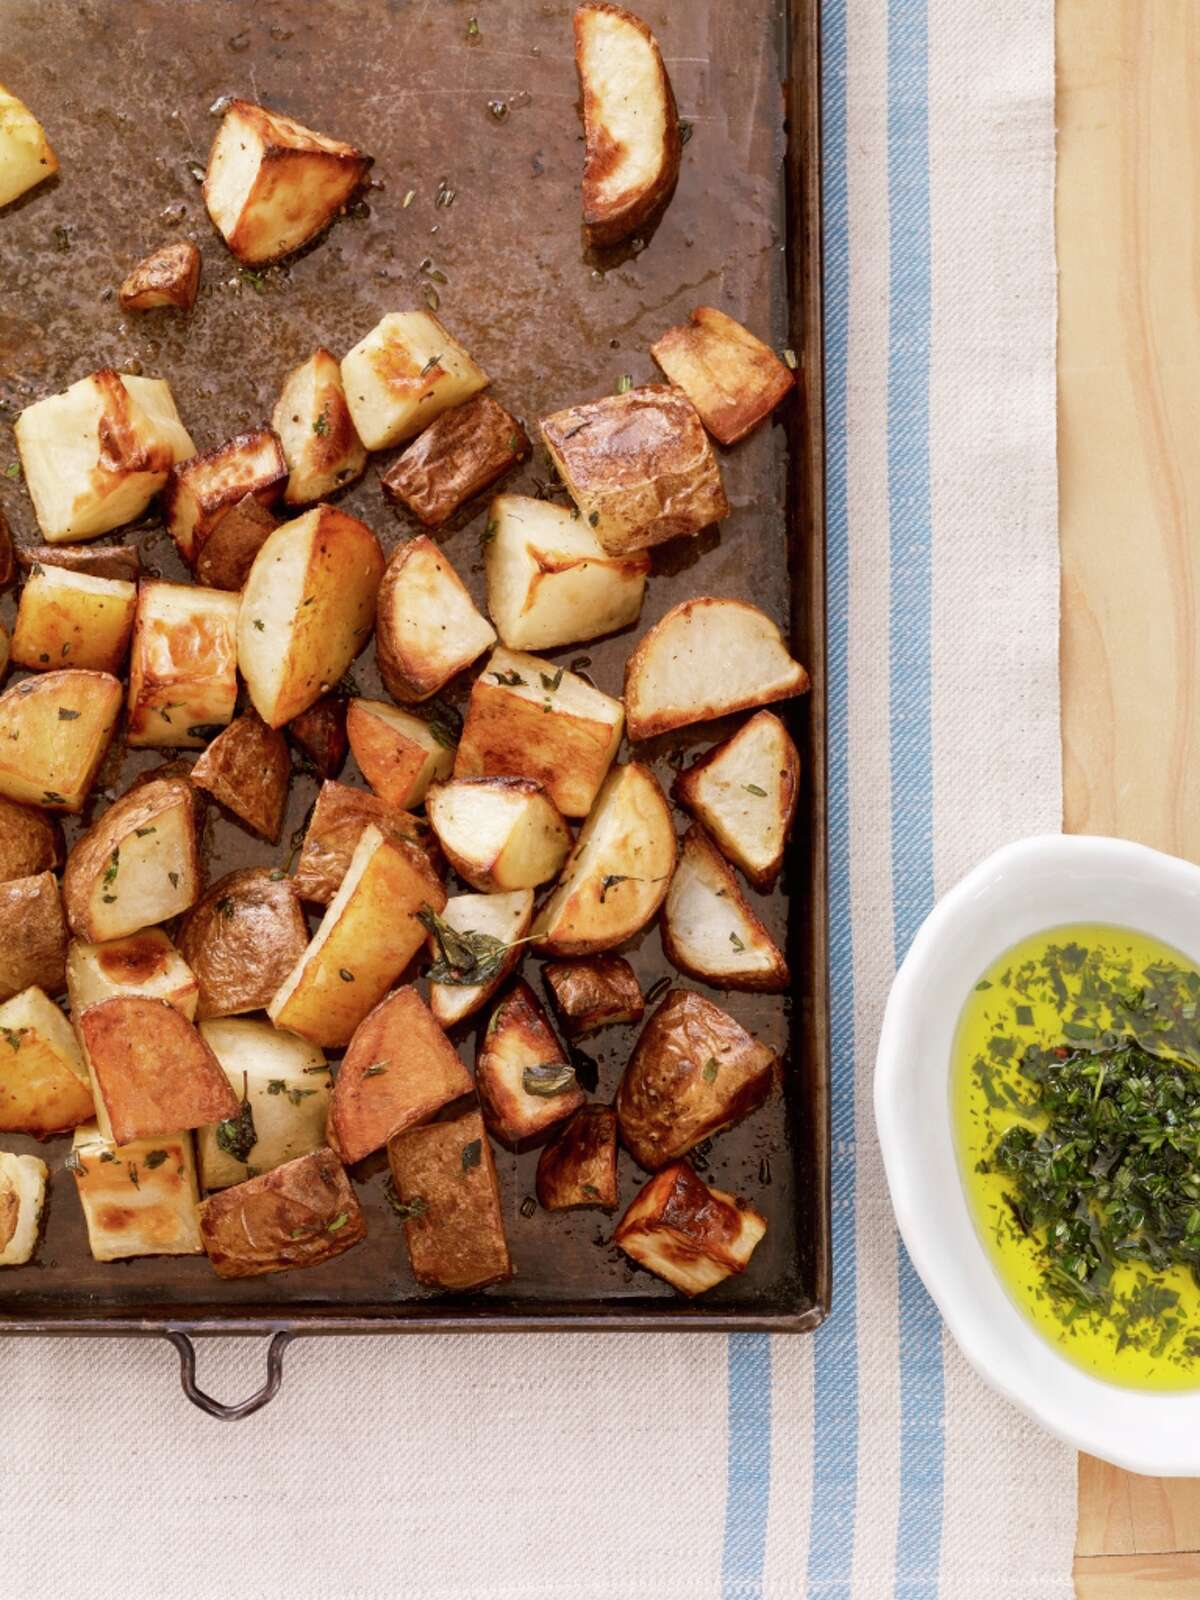 Delish: Country Living recipe for Roasted Potatoes with Fresh Herbs.